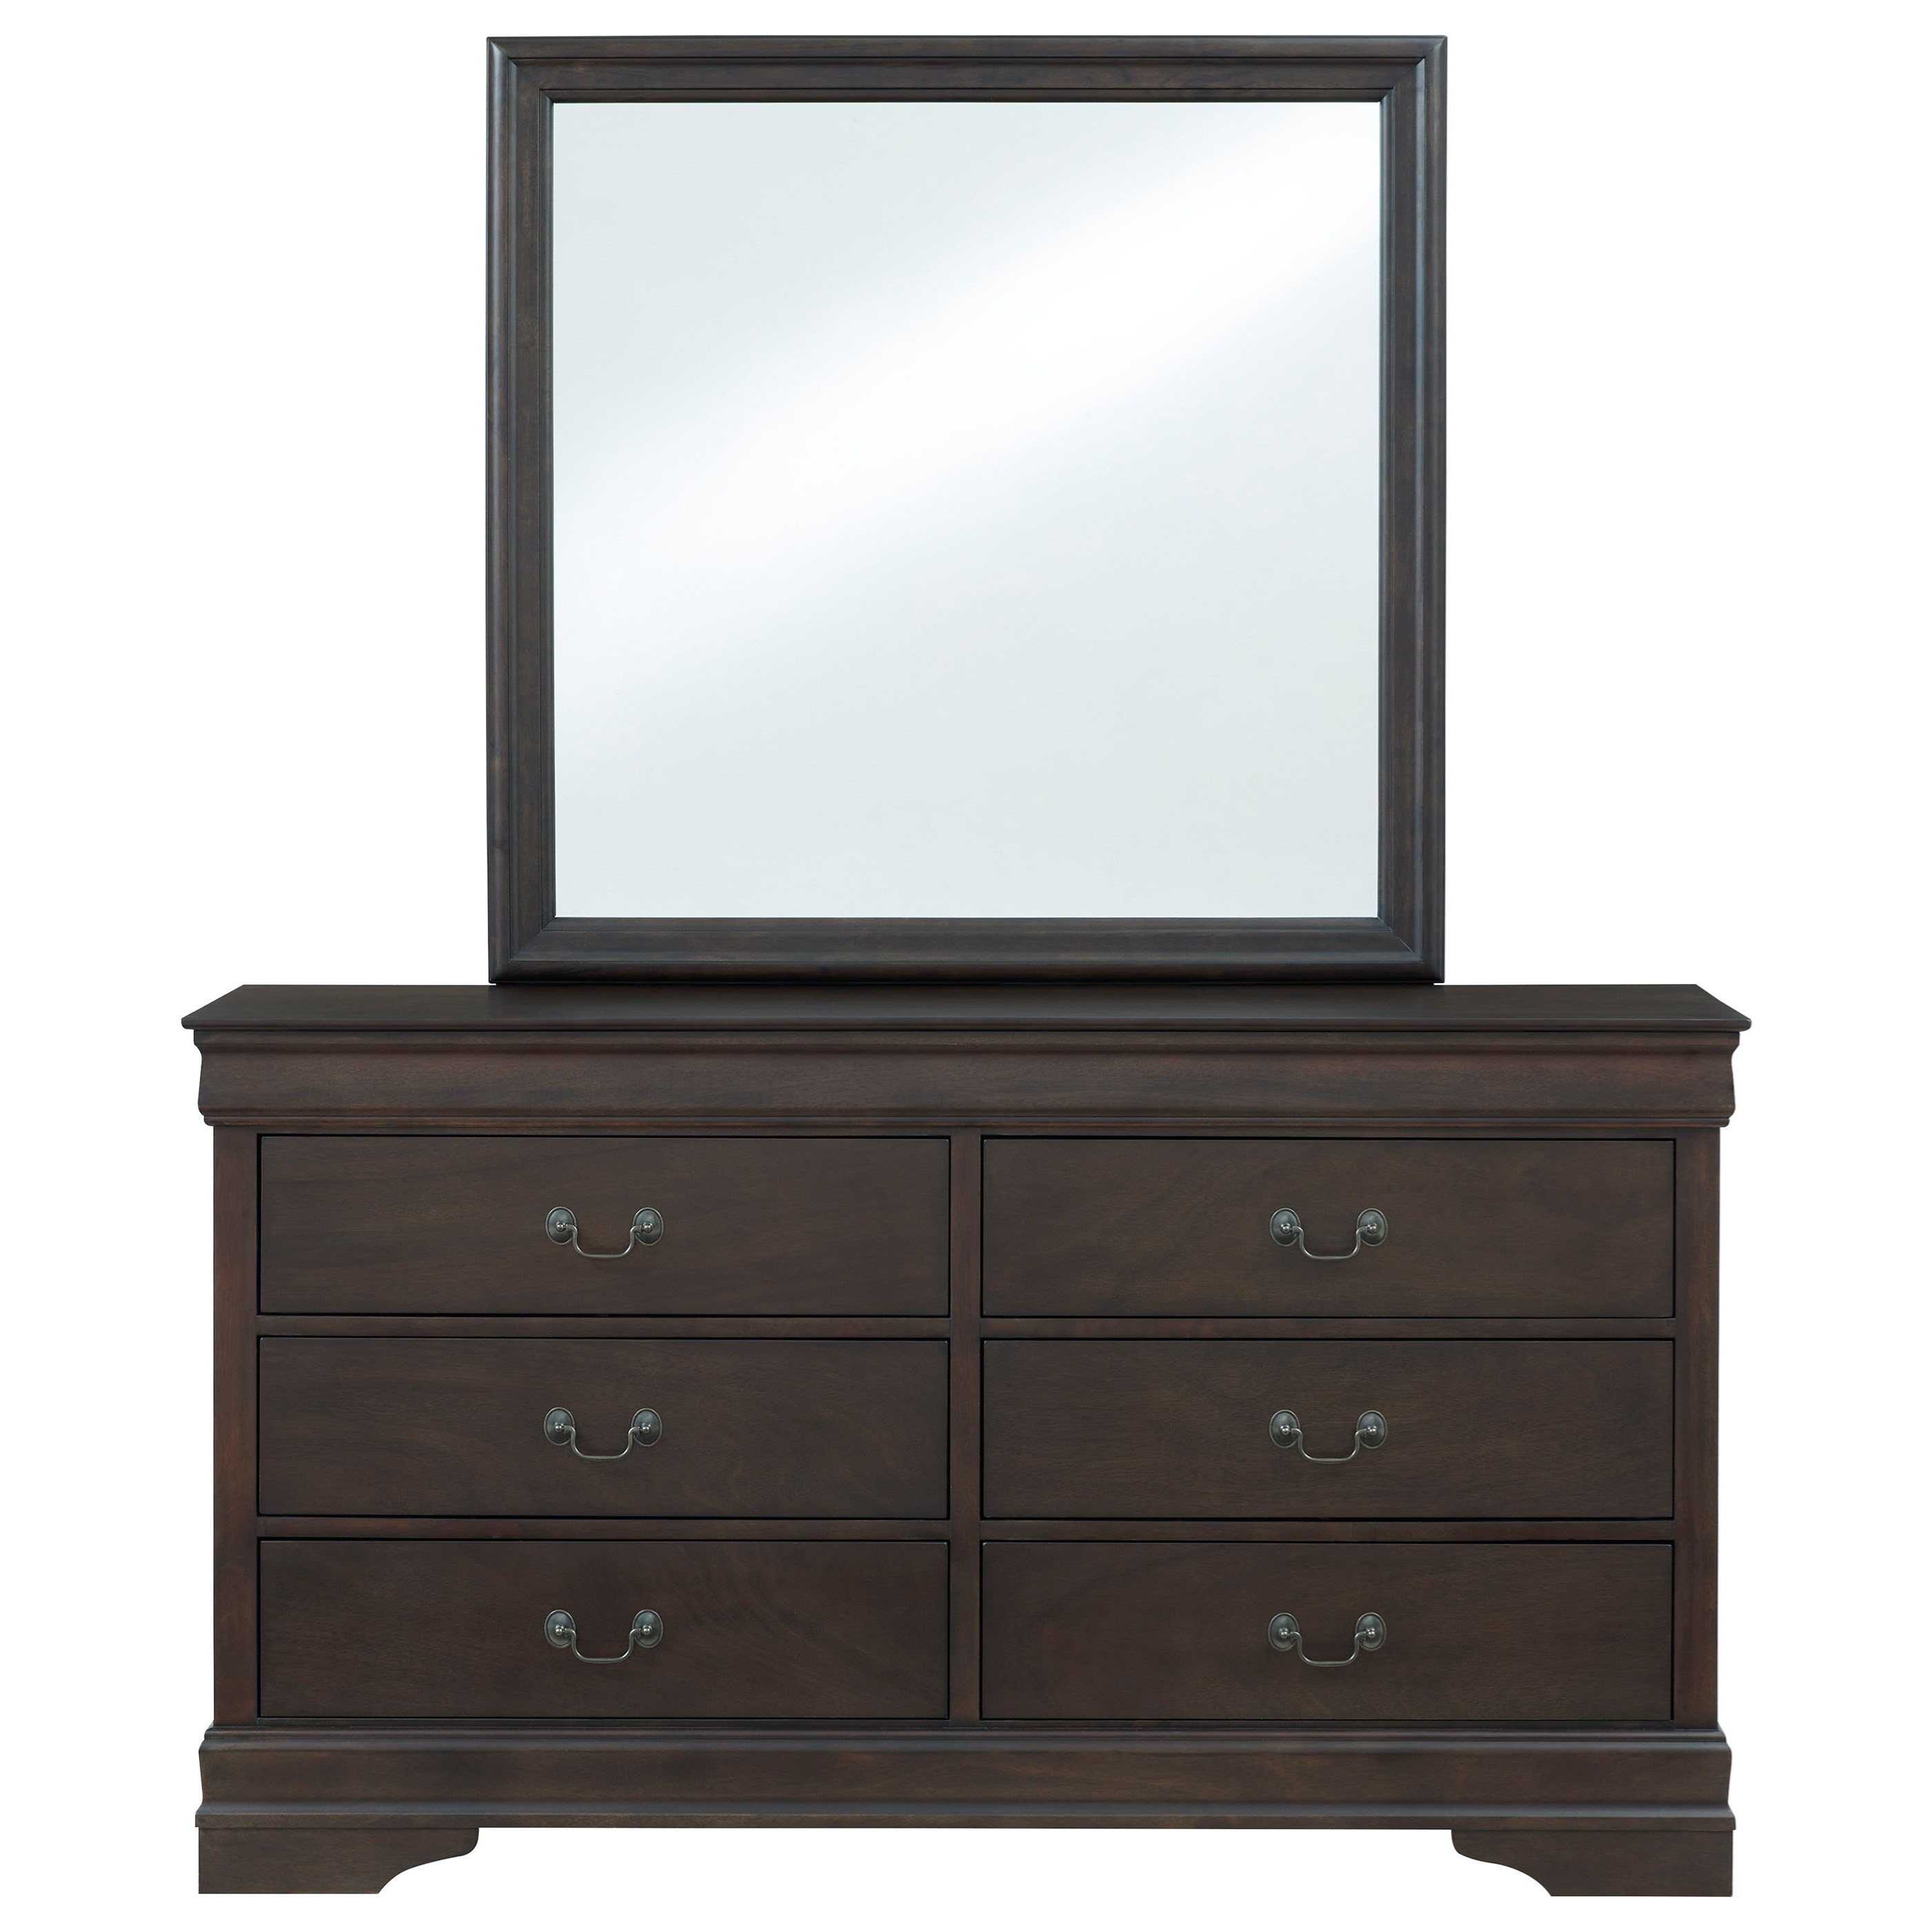 Leewarden Dresser & Mirror by Signature Design by Ashley at Northeast Factory Direct